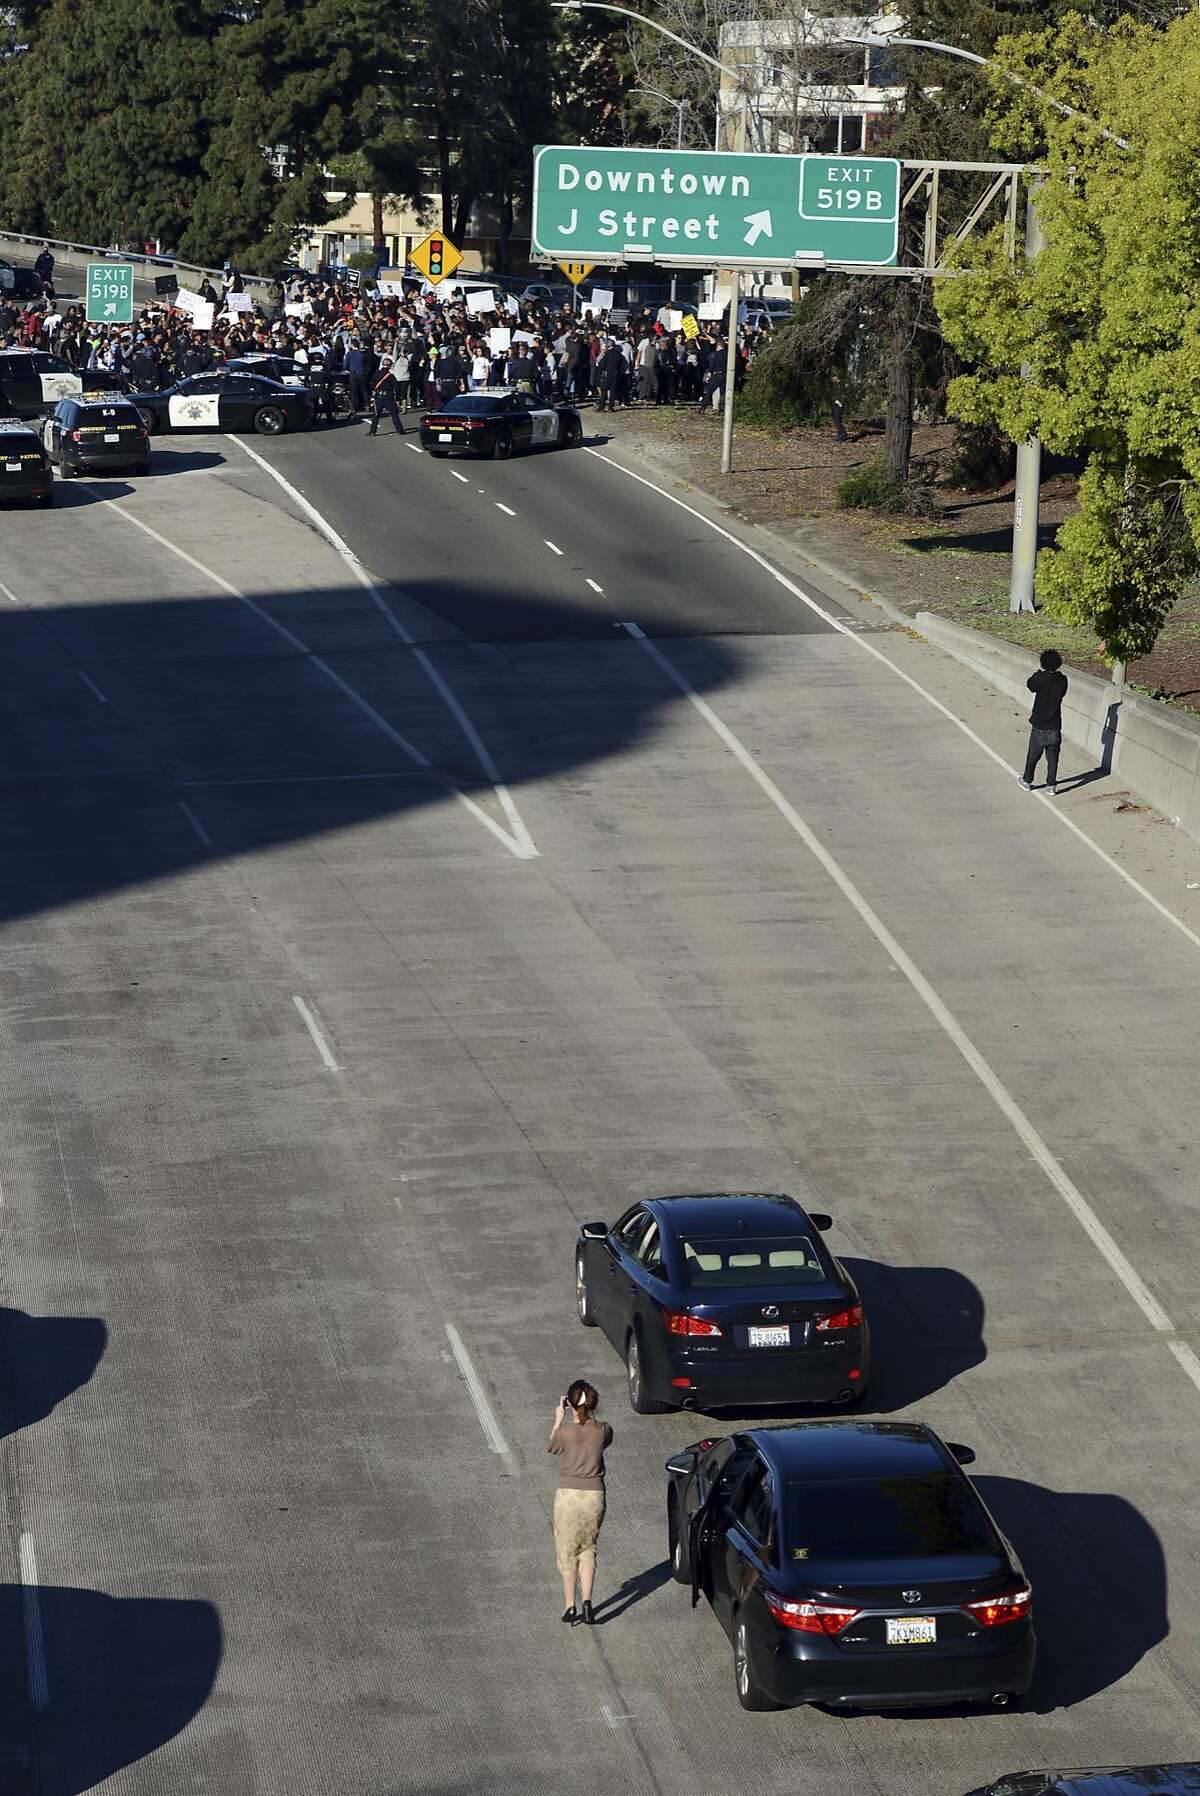 A motorist who stopped because of a demonstration photographs people protesting the fatal shooting of an unarmed black man, as they shut down Interstate 5 in Sacramento, Calif., Thursday, March 22, 2018. Hundreds of people rallied for Stephon Clark, a 22-year-old who was shot Sunday in his grandparents' backyard. Police say they feared he had a handgun when they confronted him after reports that he had been breaking windows, but he only had a cellphone. (AP Photo/Robert Petersen)